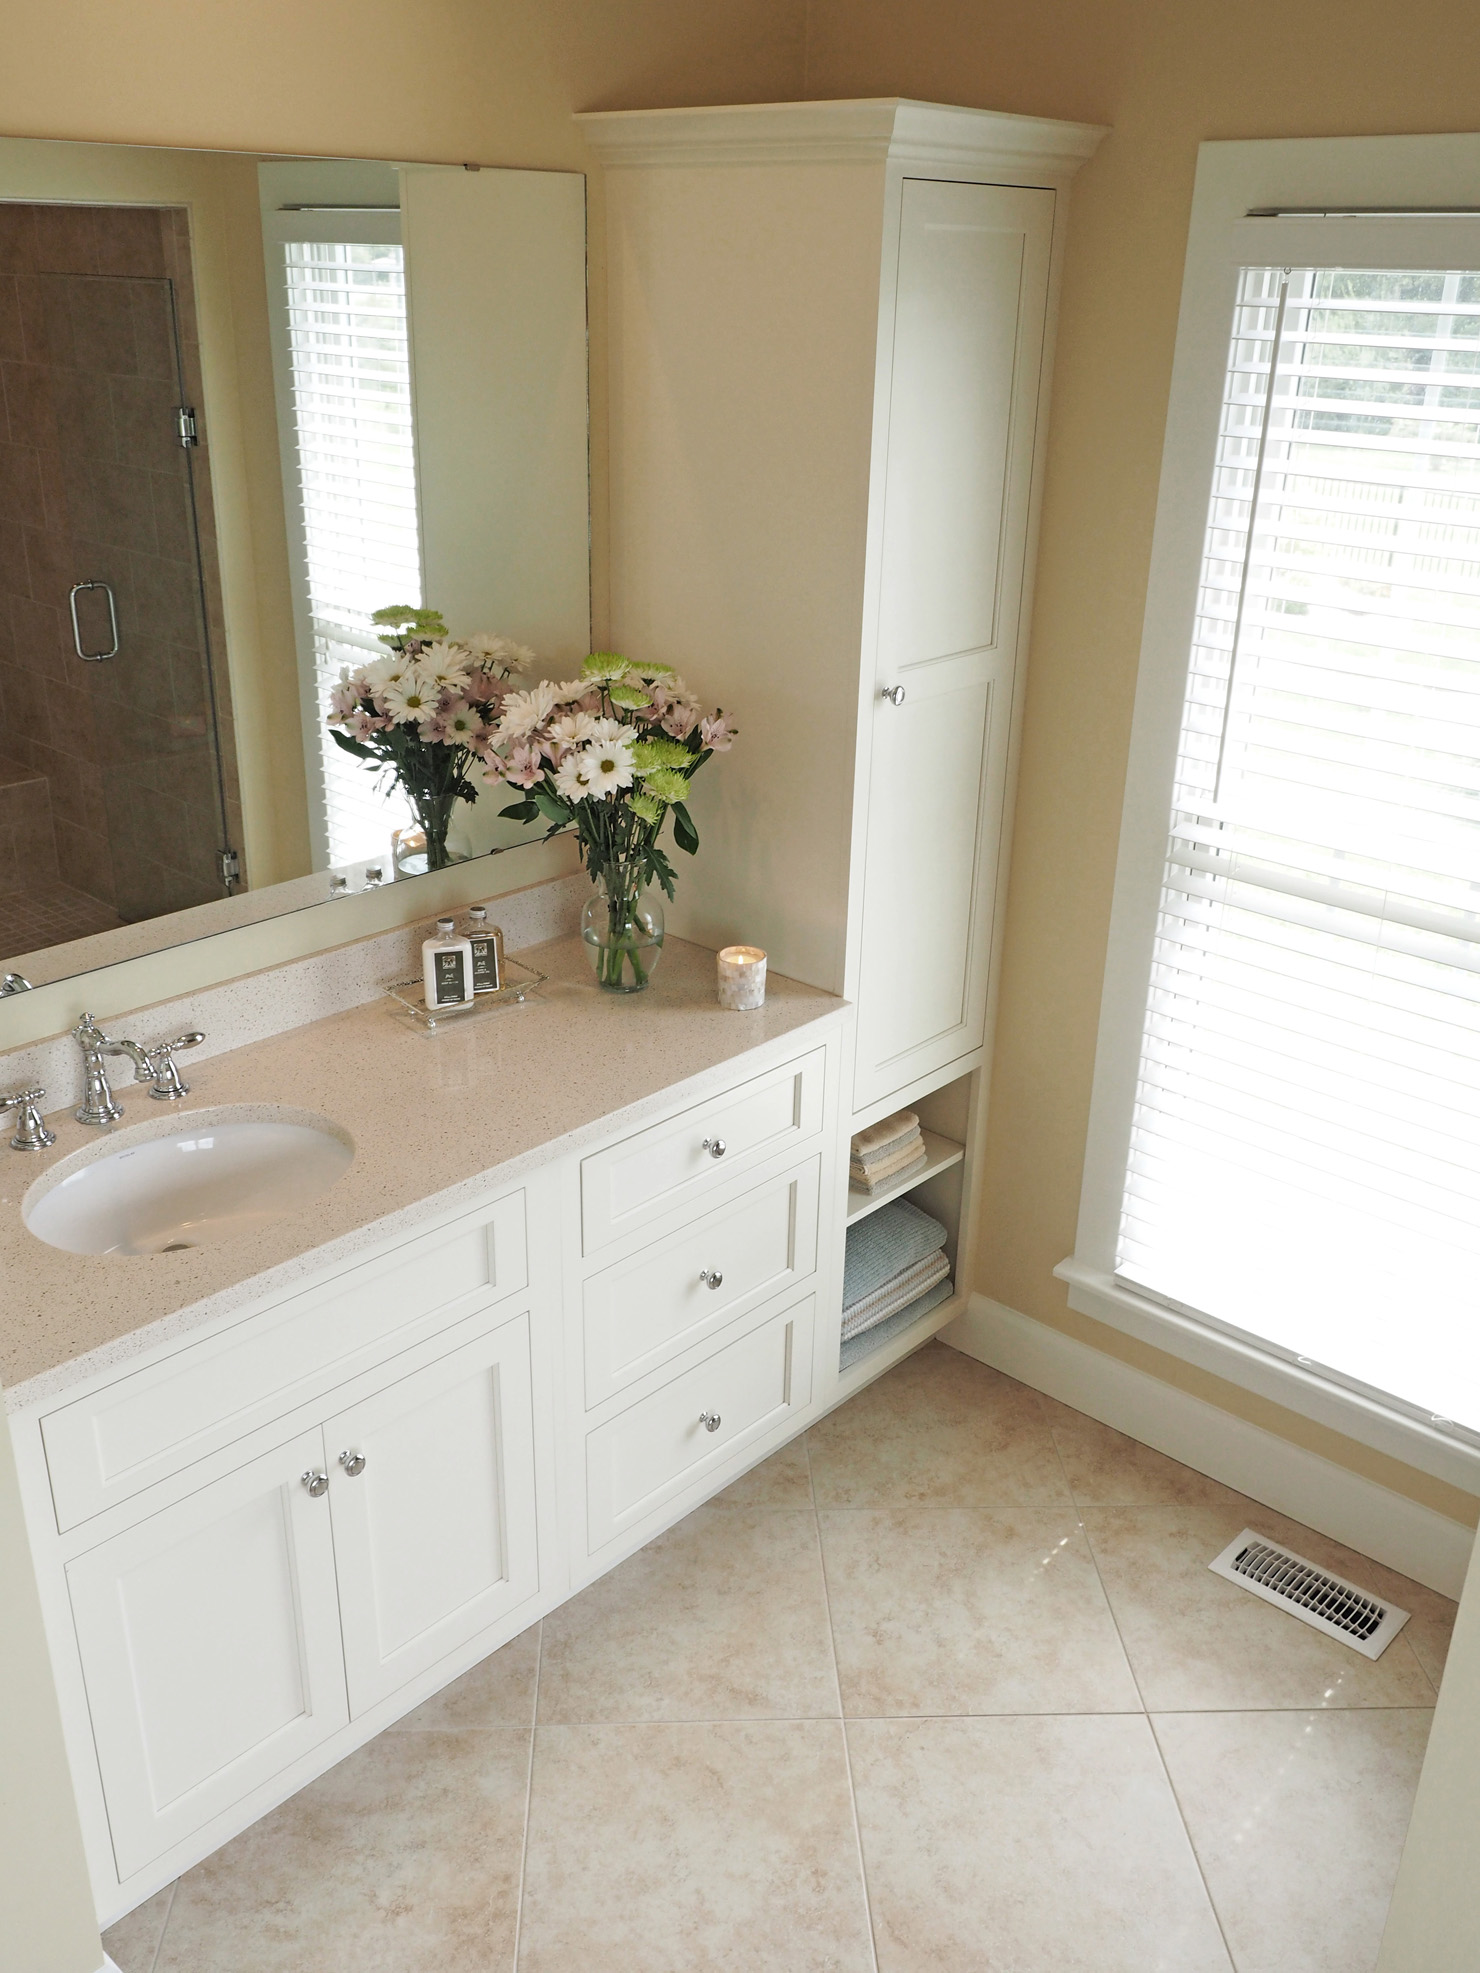 Previous paint color was Ivoire by Sherwin Williams. Our counter tops are Cambria Quartz and the name is Cardiff Cream.